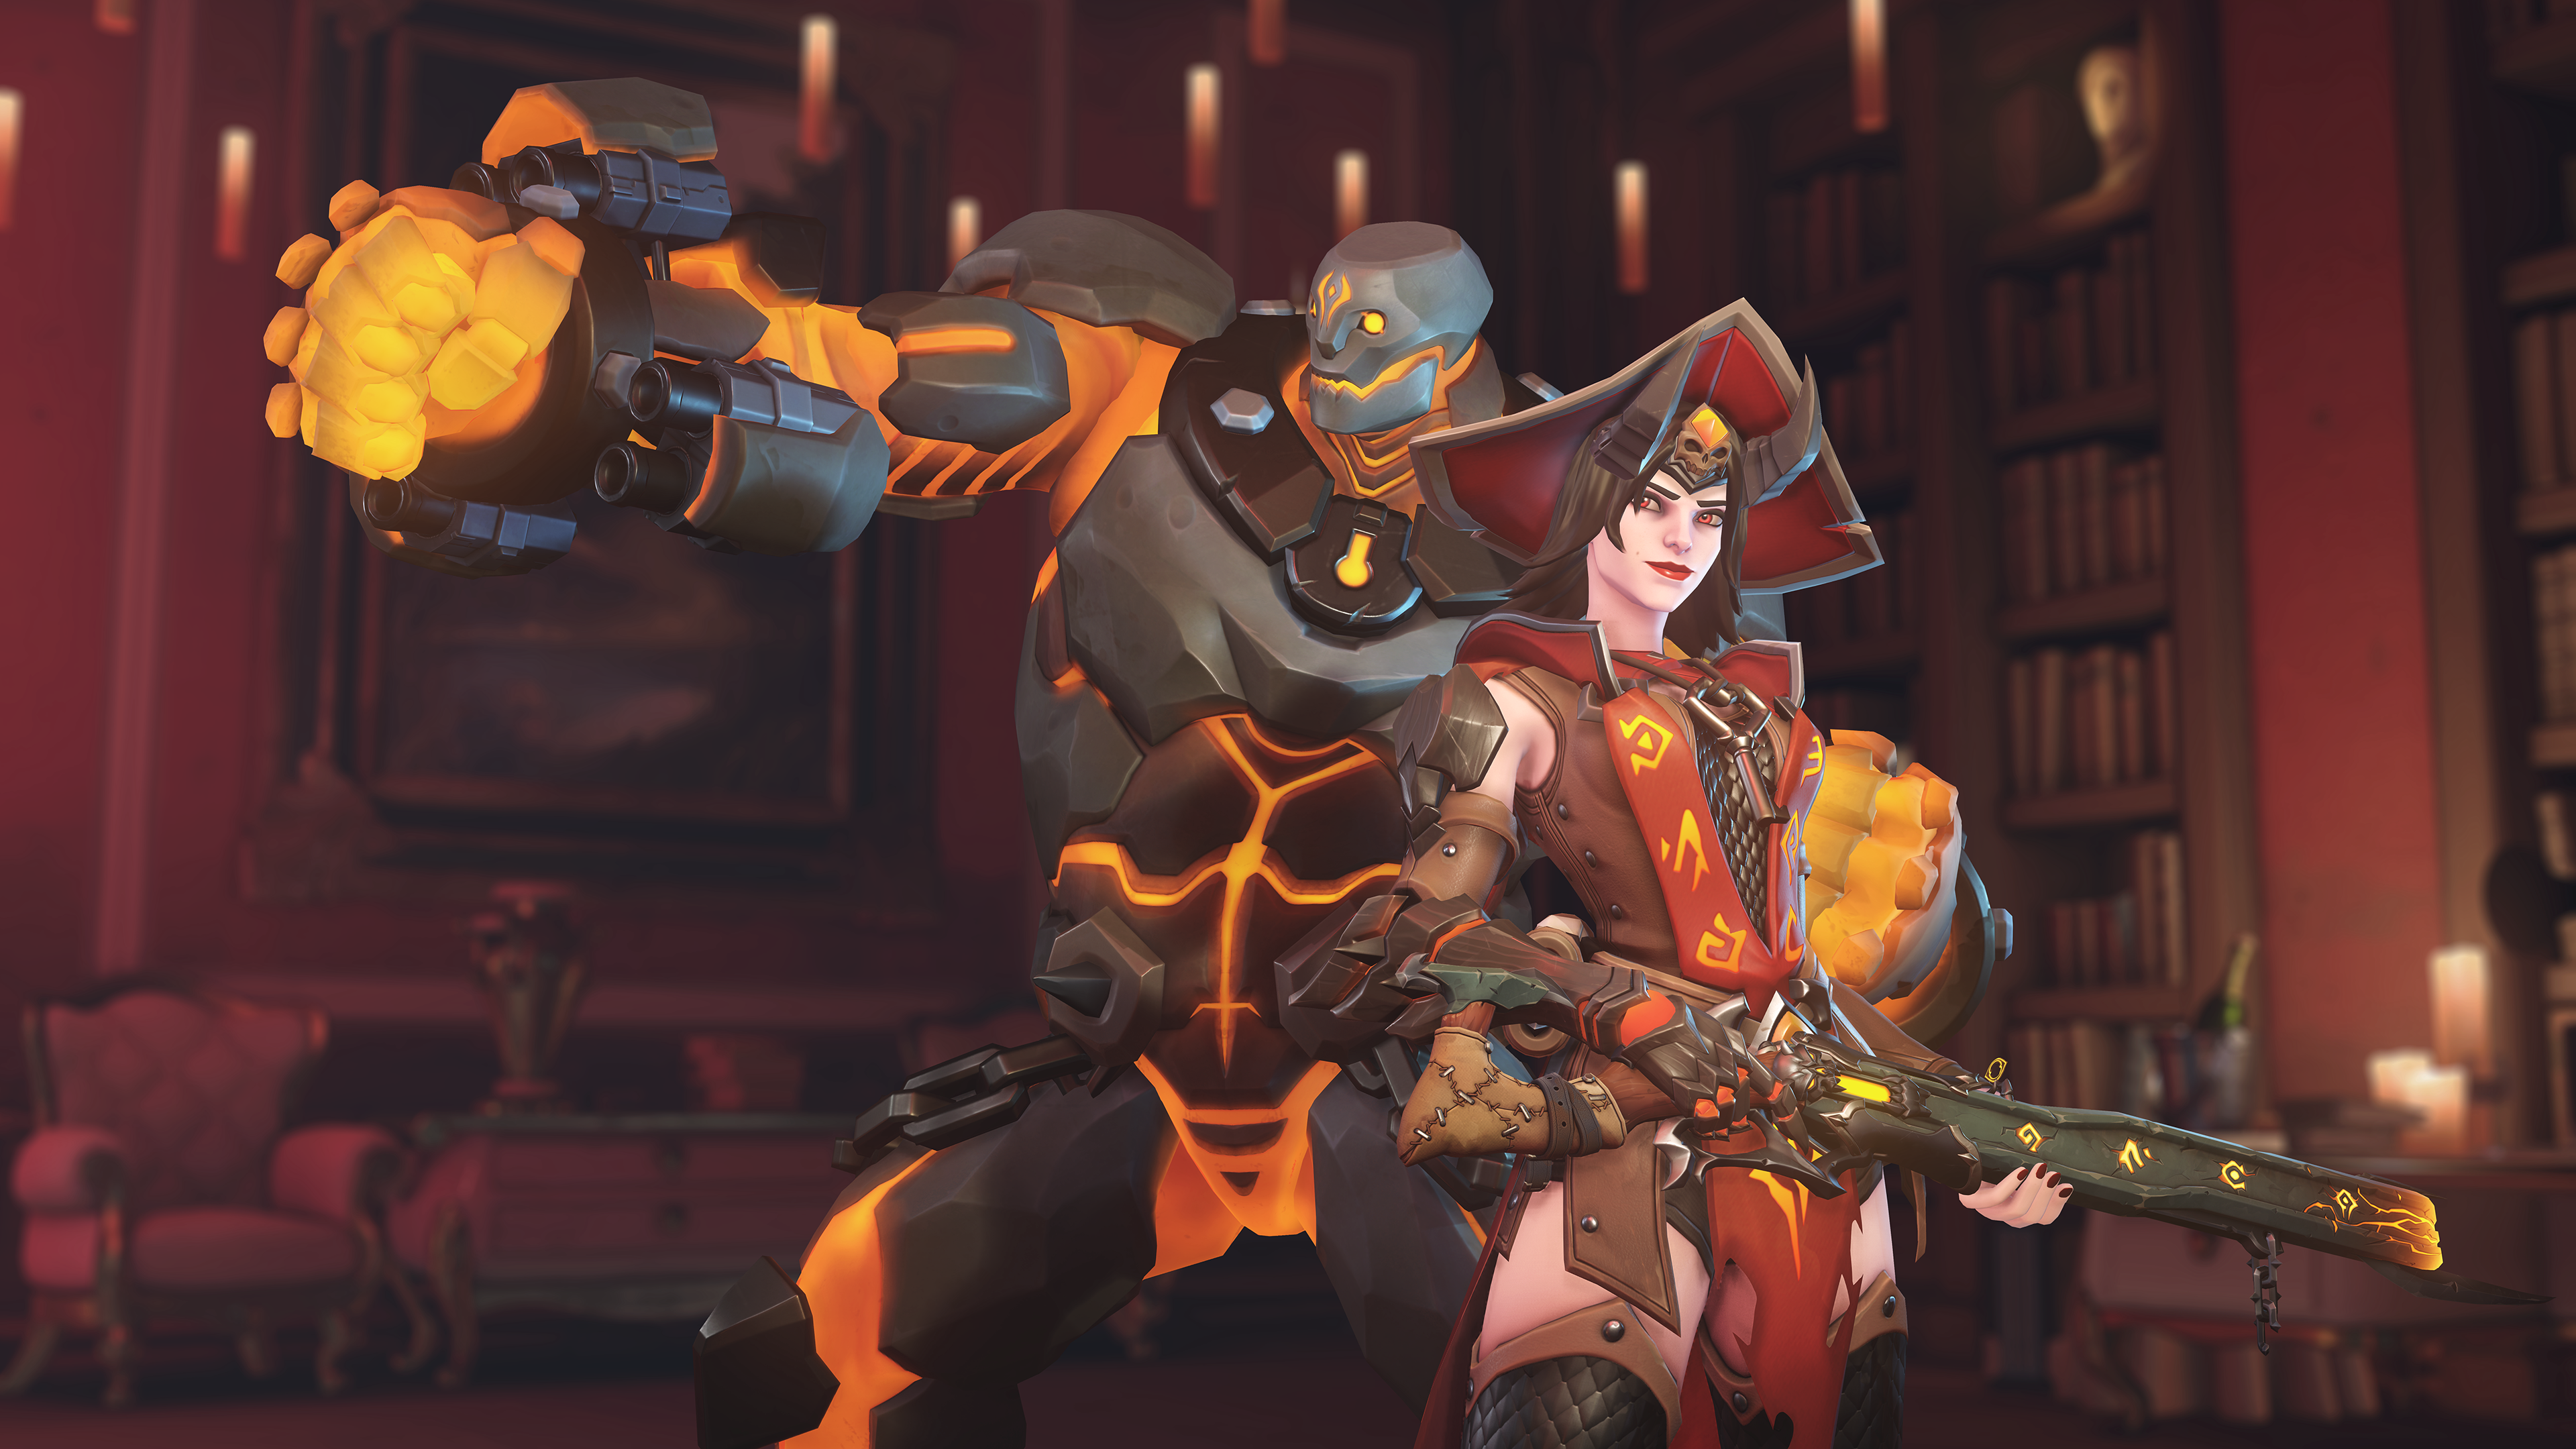 Ashe and BOB in Halloween Overwatch skins